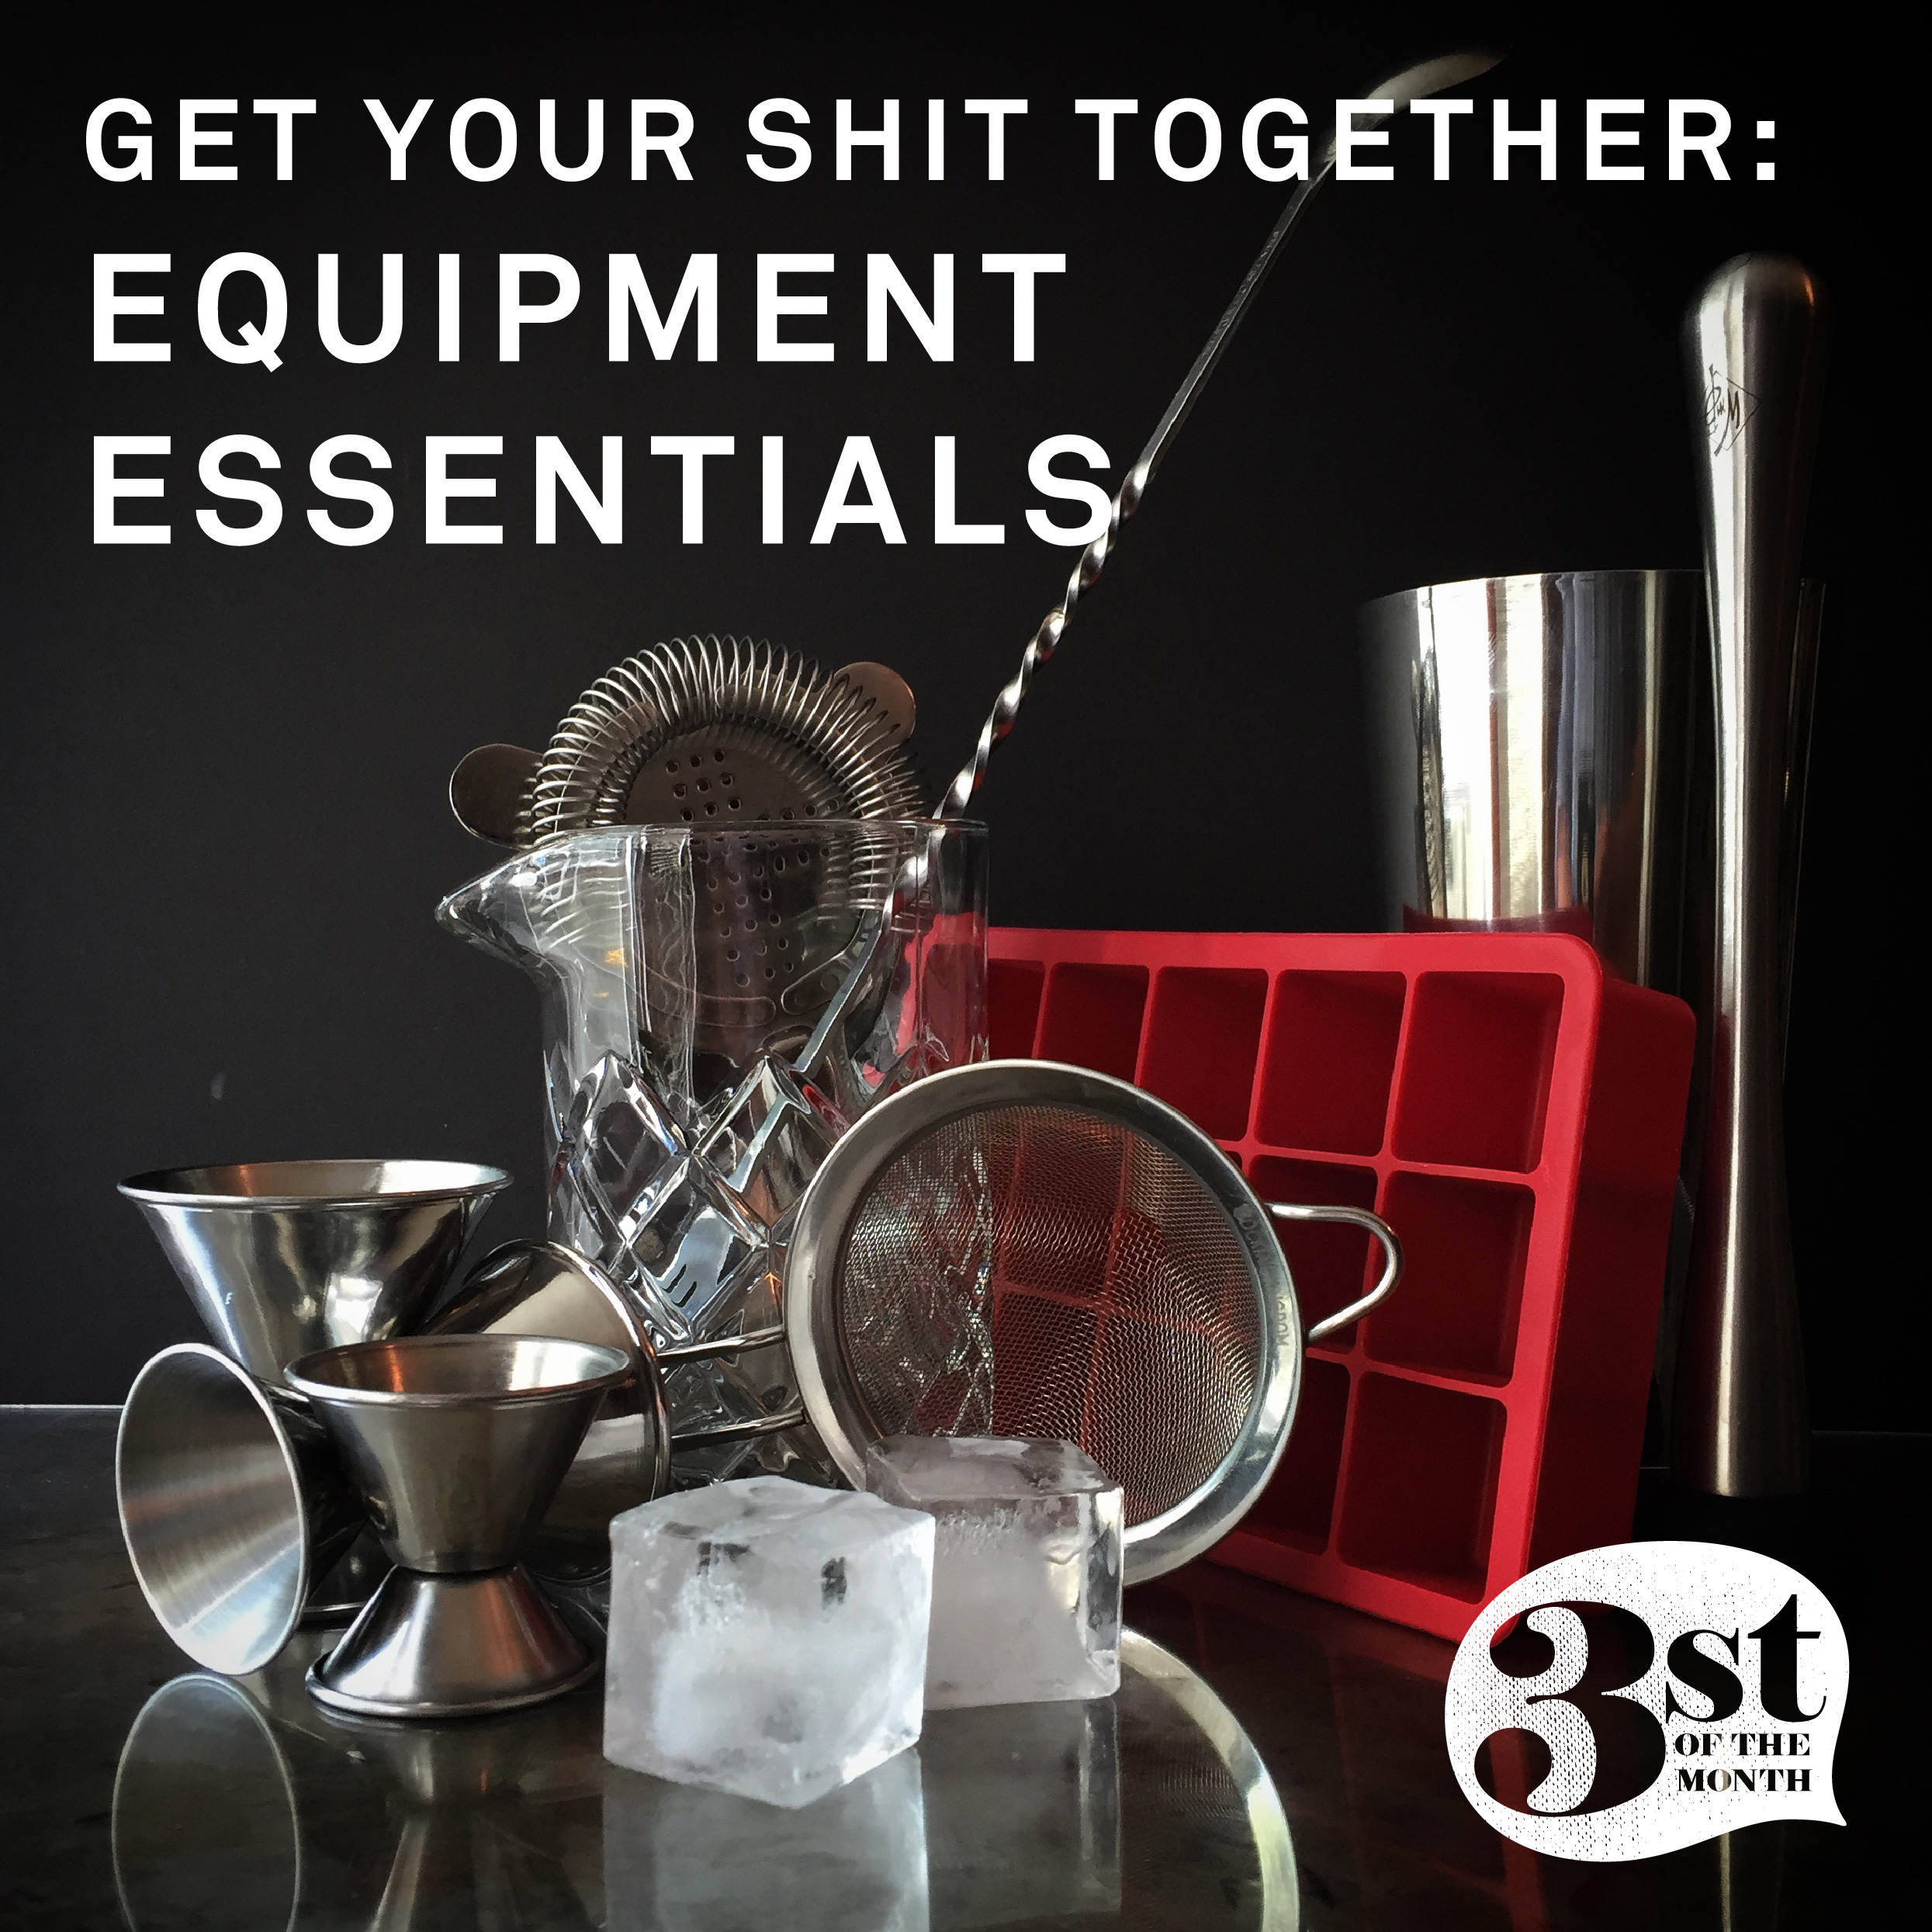 Equipment Essentials from 3st of the Month.jpg